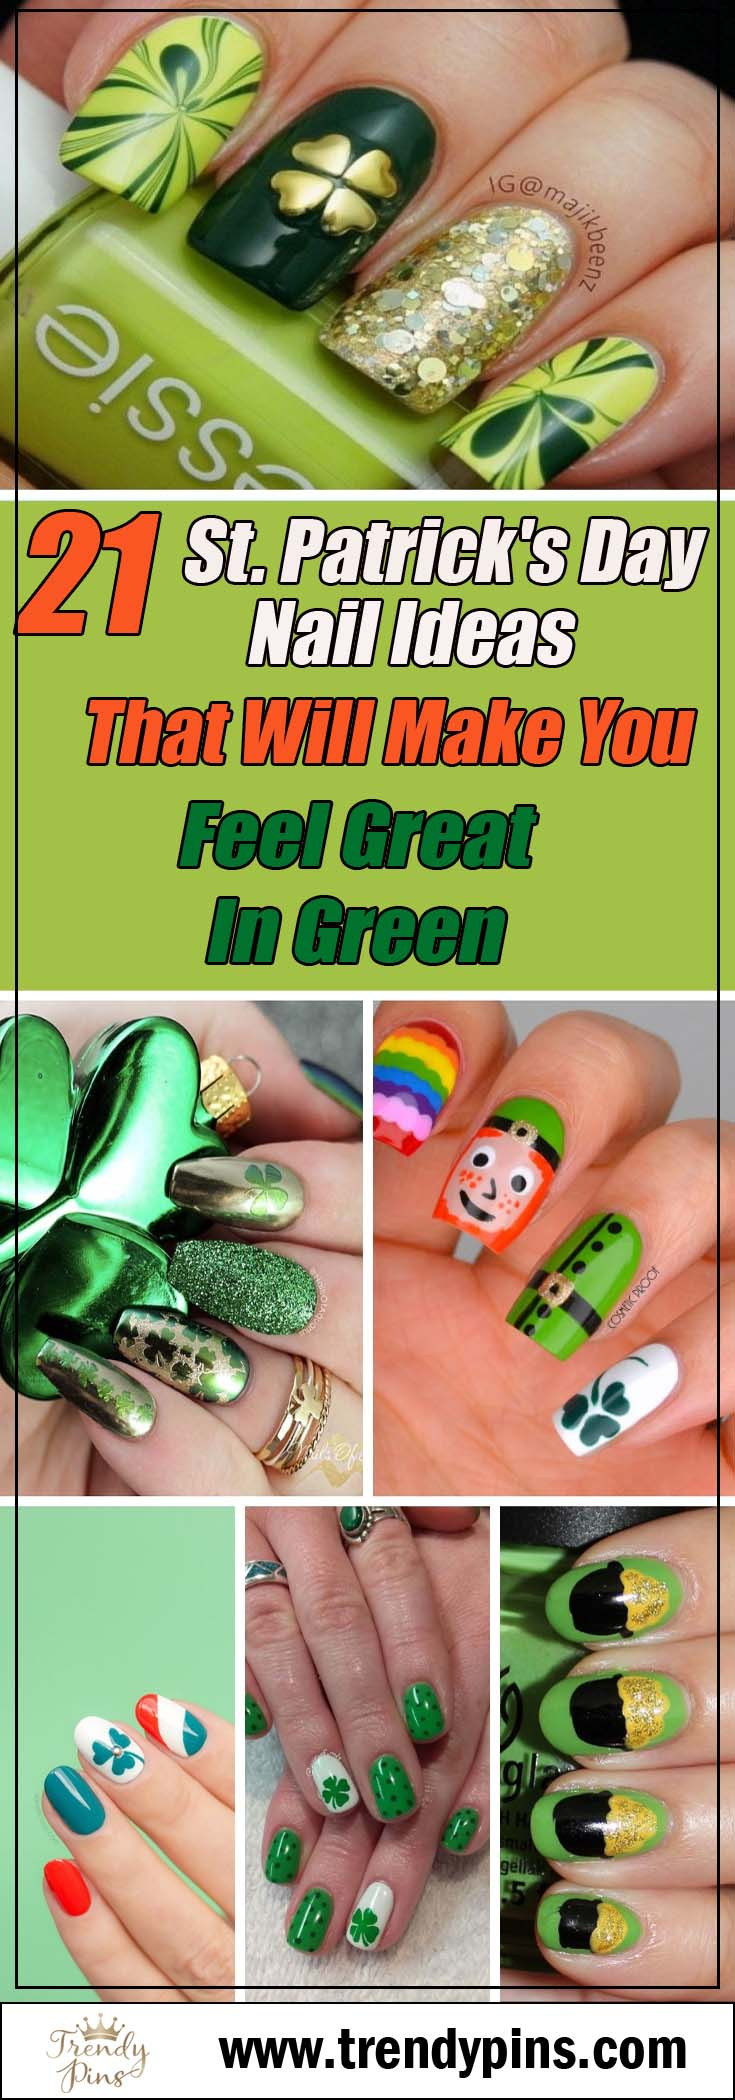 21 St Patrick's Day nail ideas that will make you feel great in green